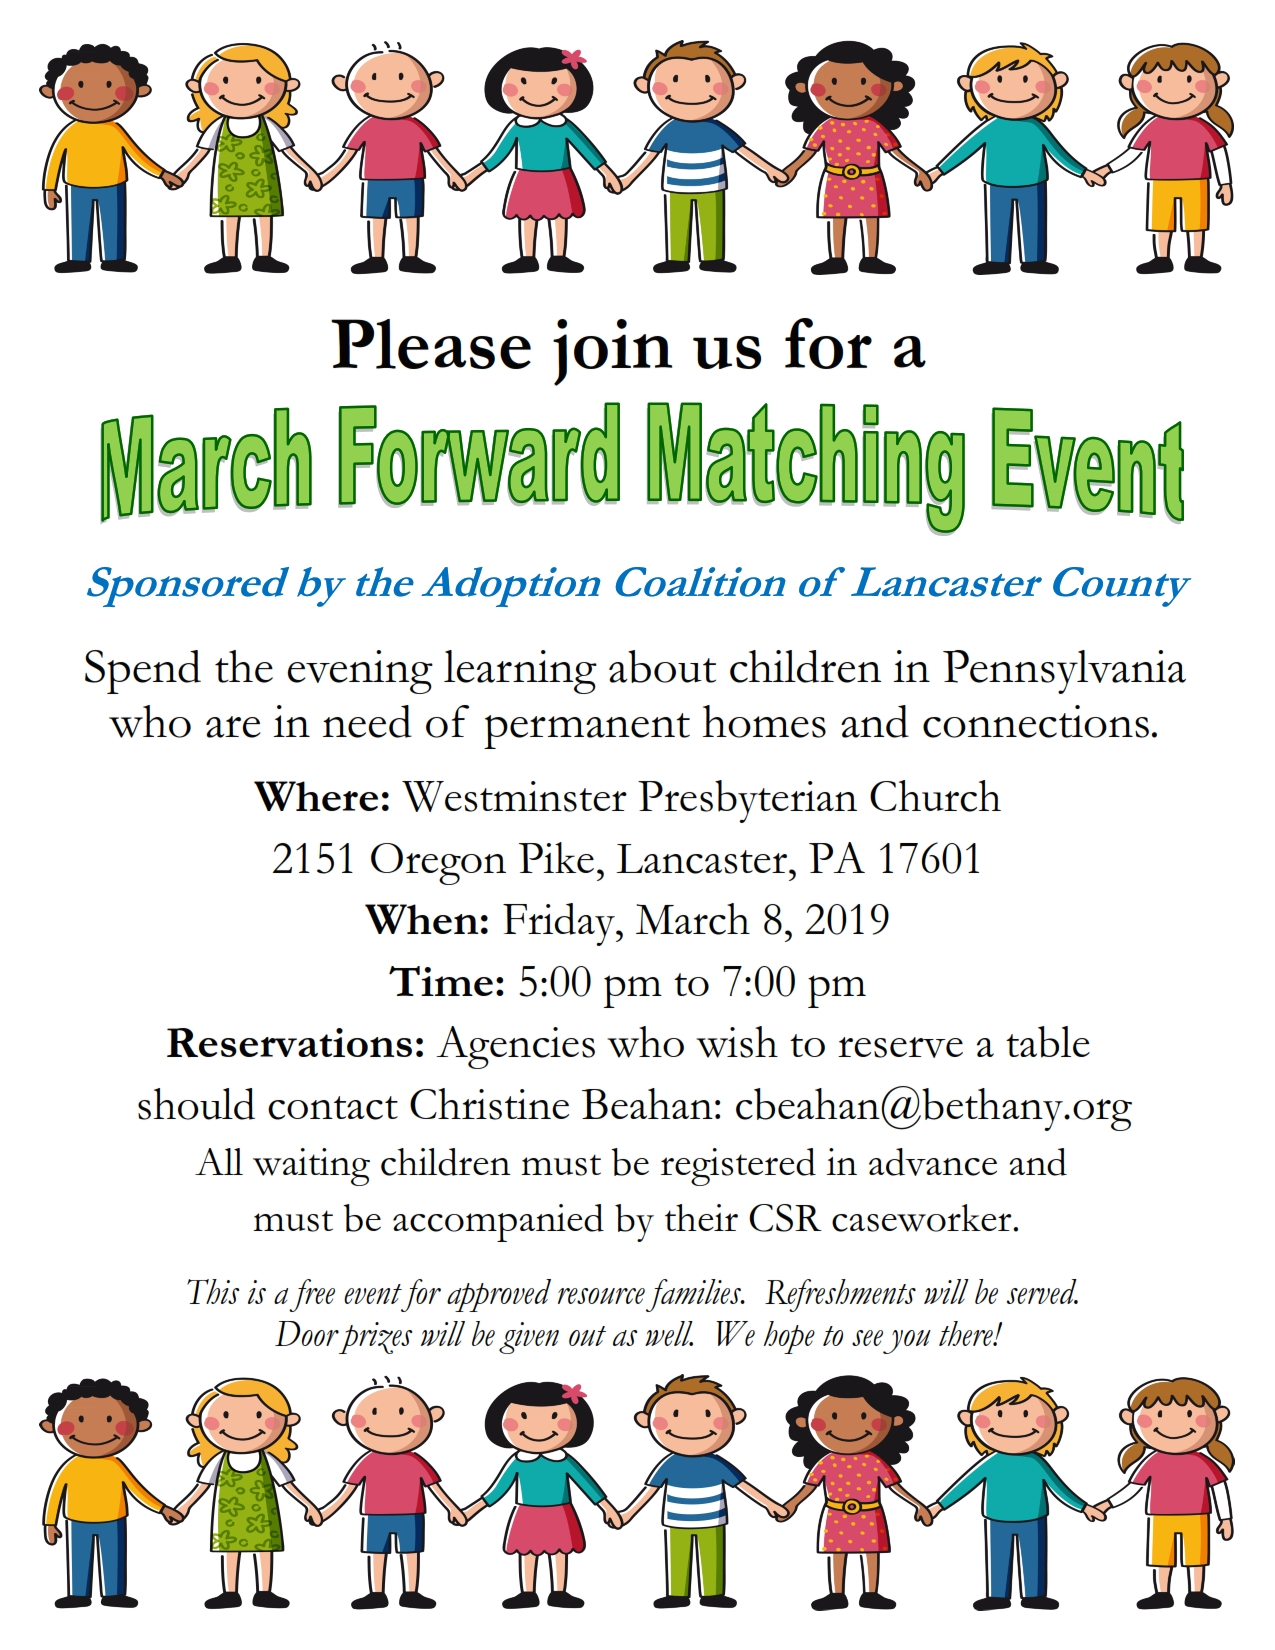 March Forward Matching Event